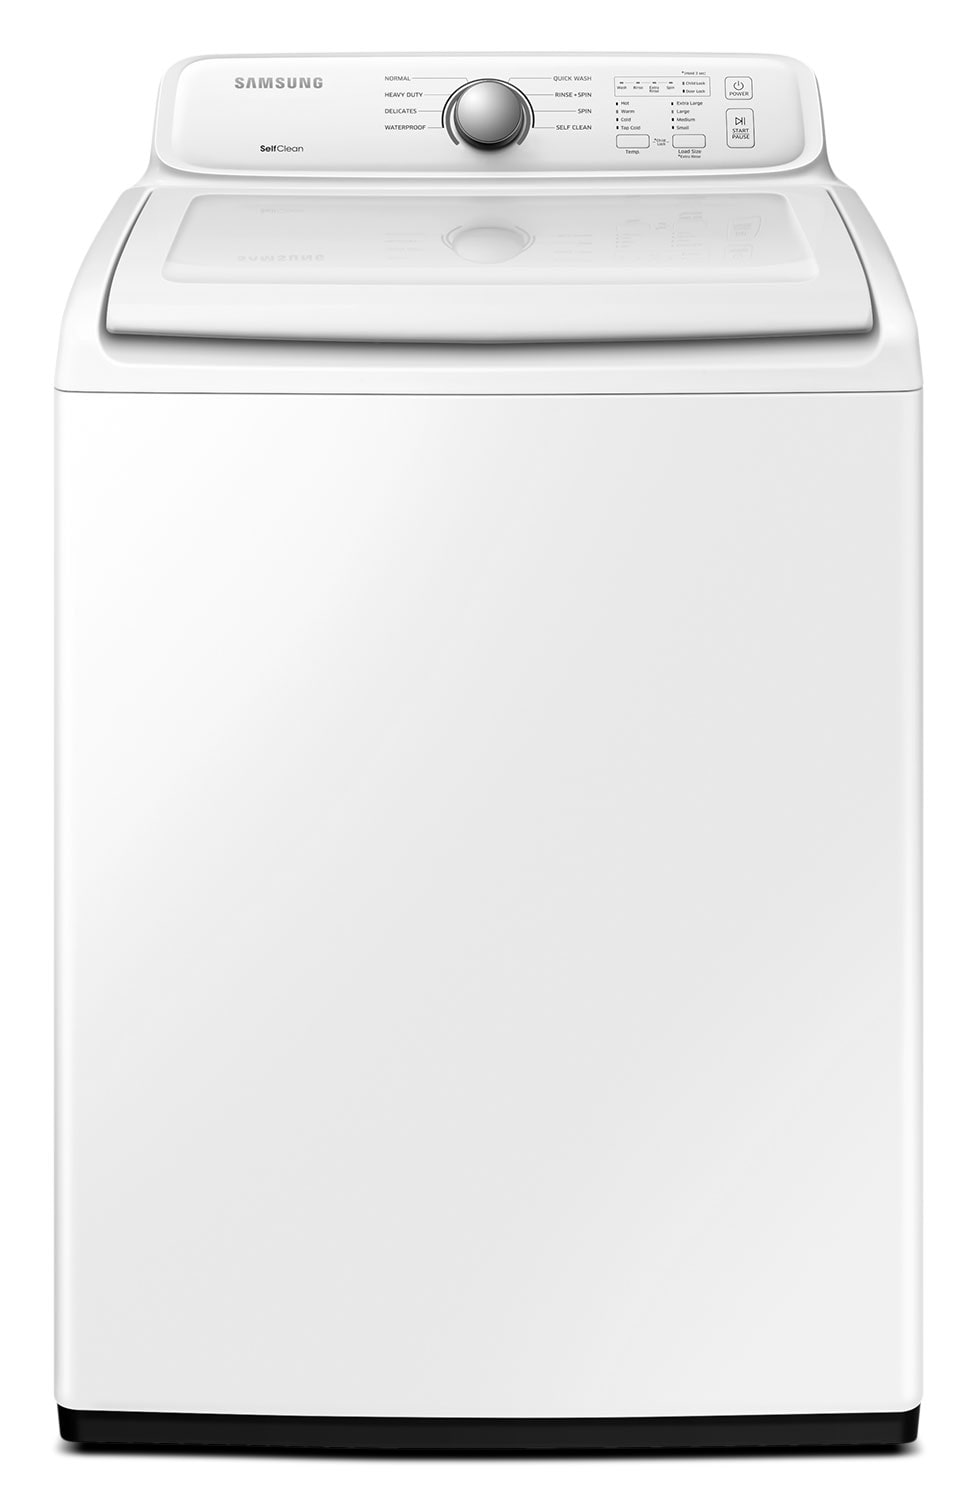 Washers and Dryers - Samsung White Top-Load Washer (4.8 Cu. Ft. IEC) - WA40J3000AW/A2